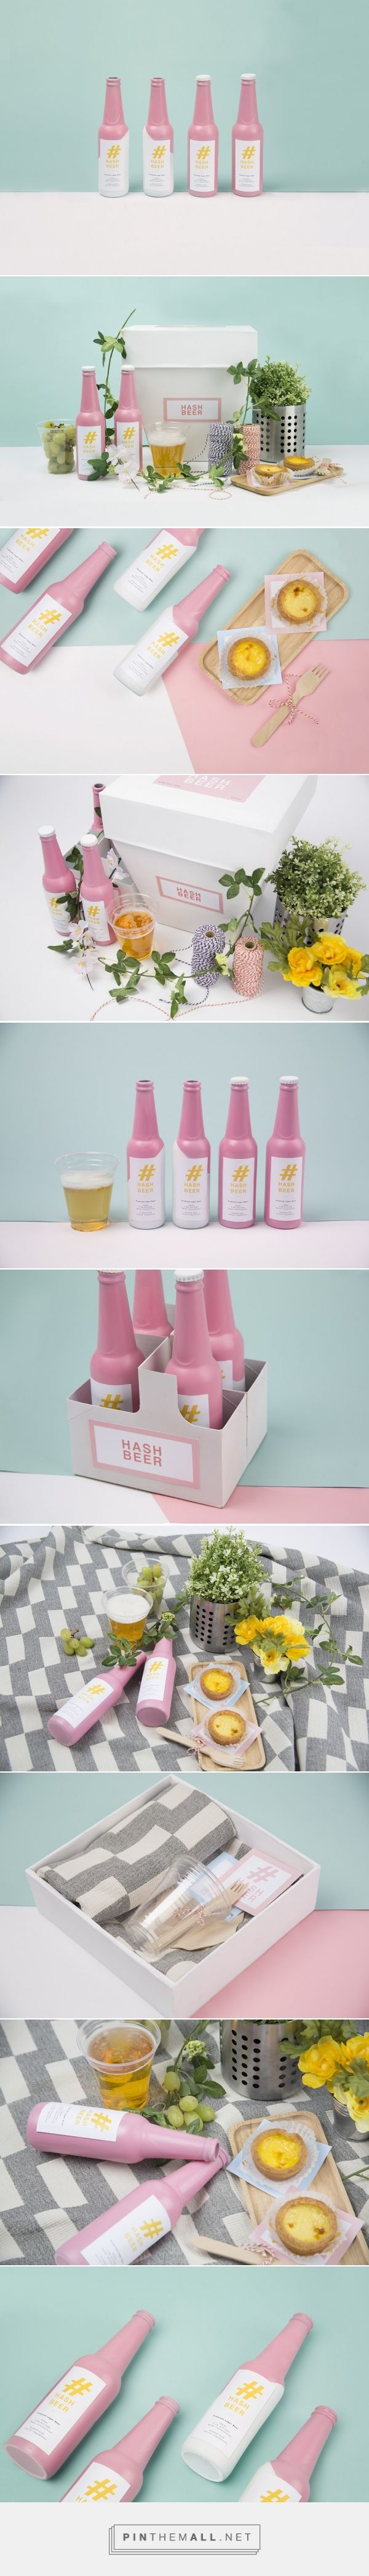 Hash Beer (Student Project) - Packaging of the World - Creative Package Design Gallery - http://www.packagingoftheworld.com/2016/05/hash-beer-student-project.html